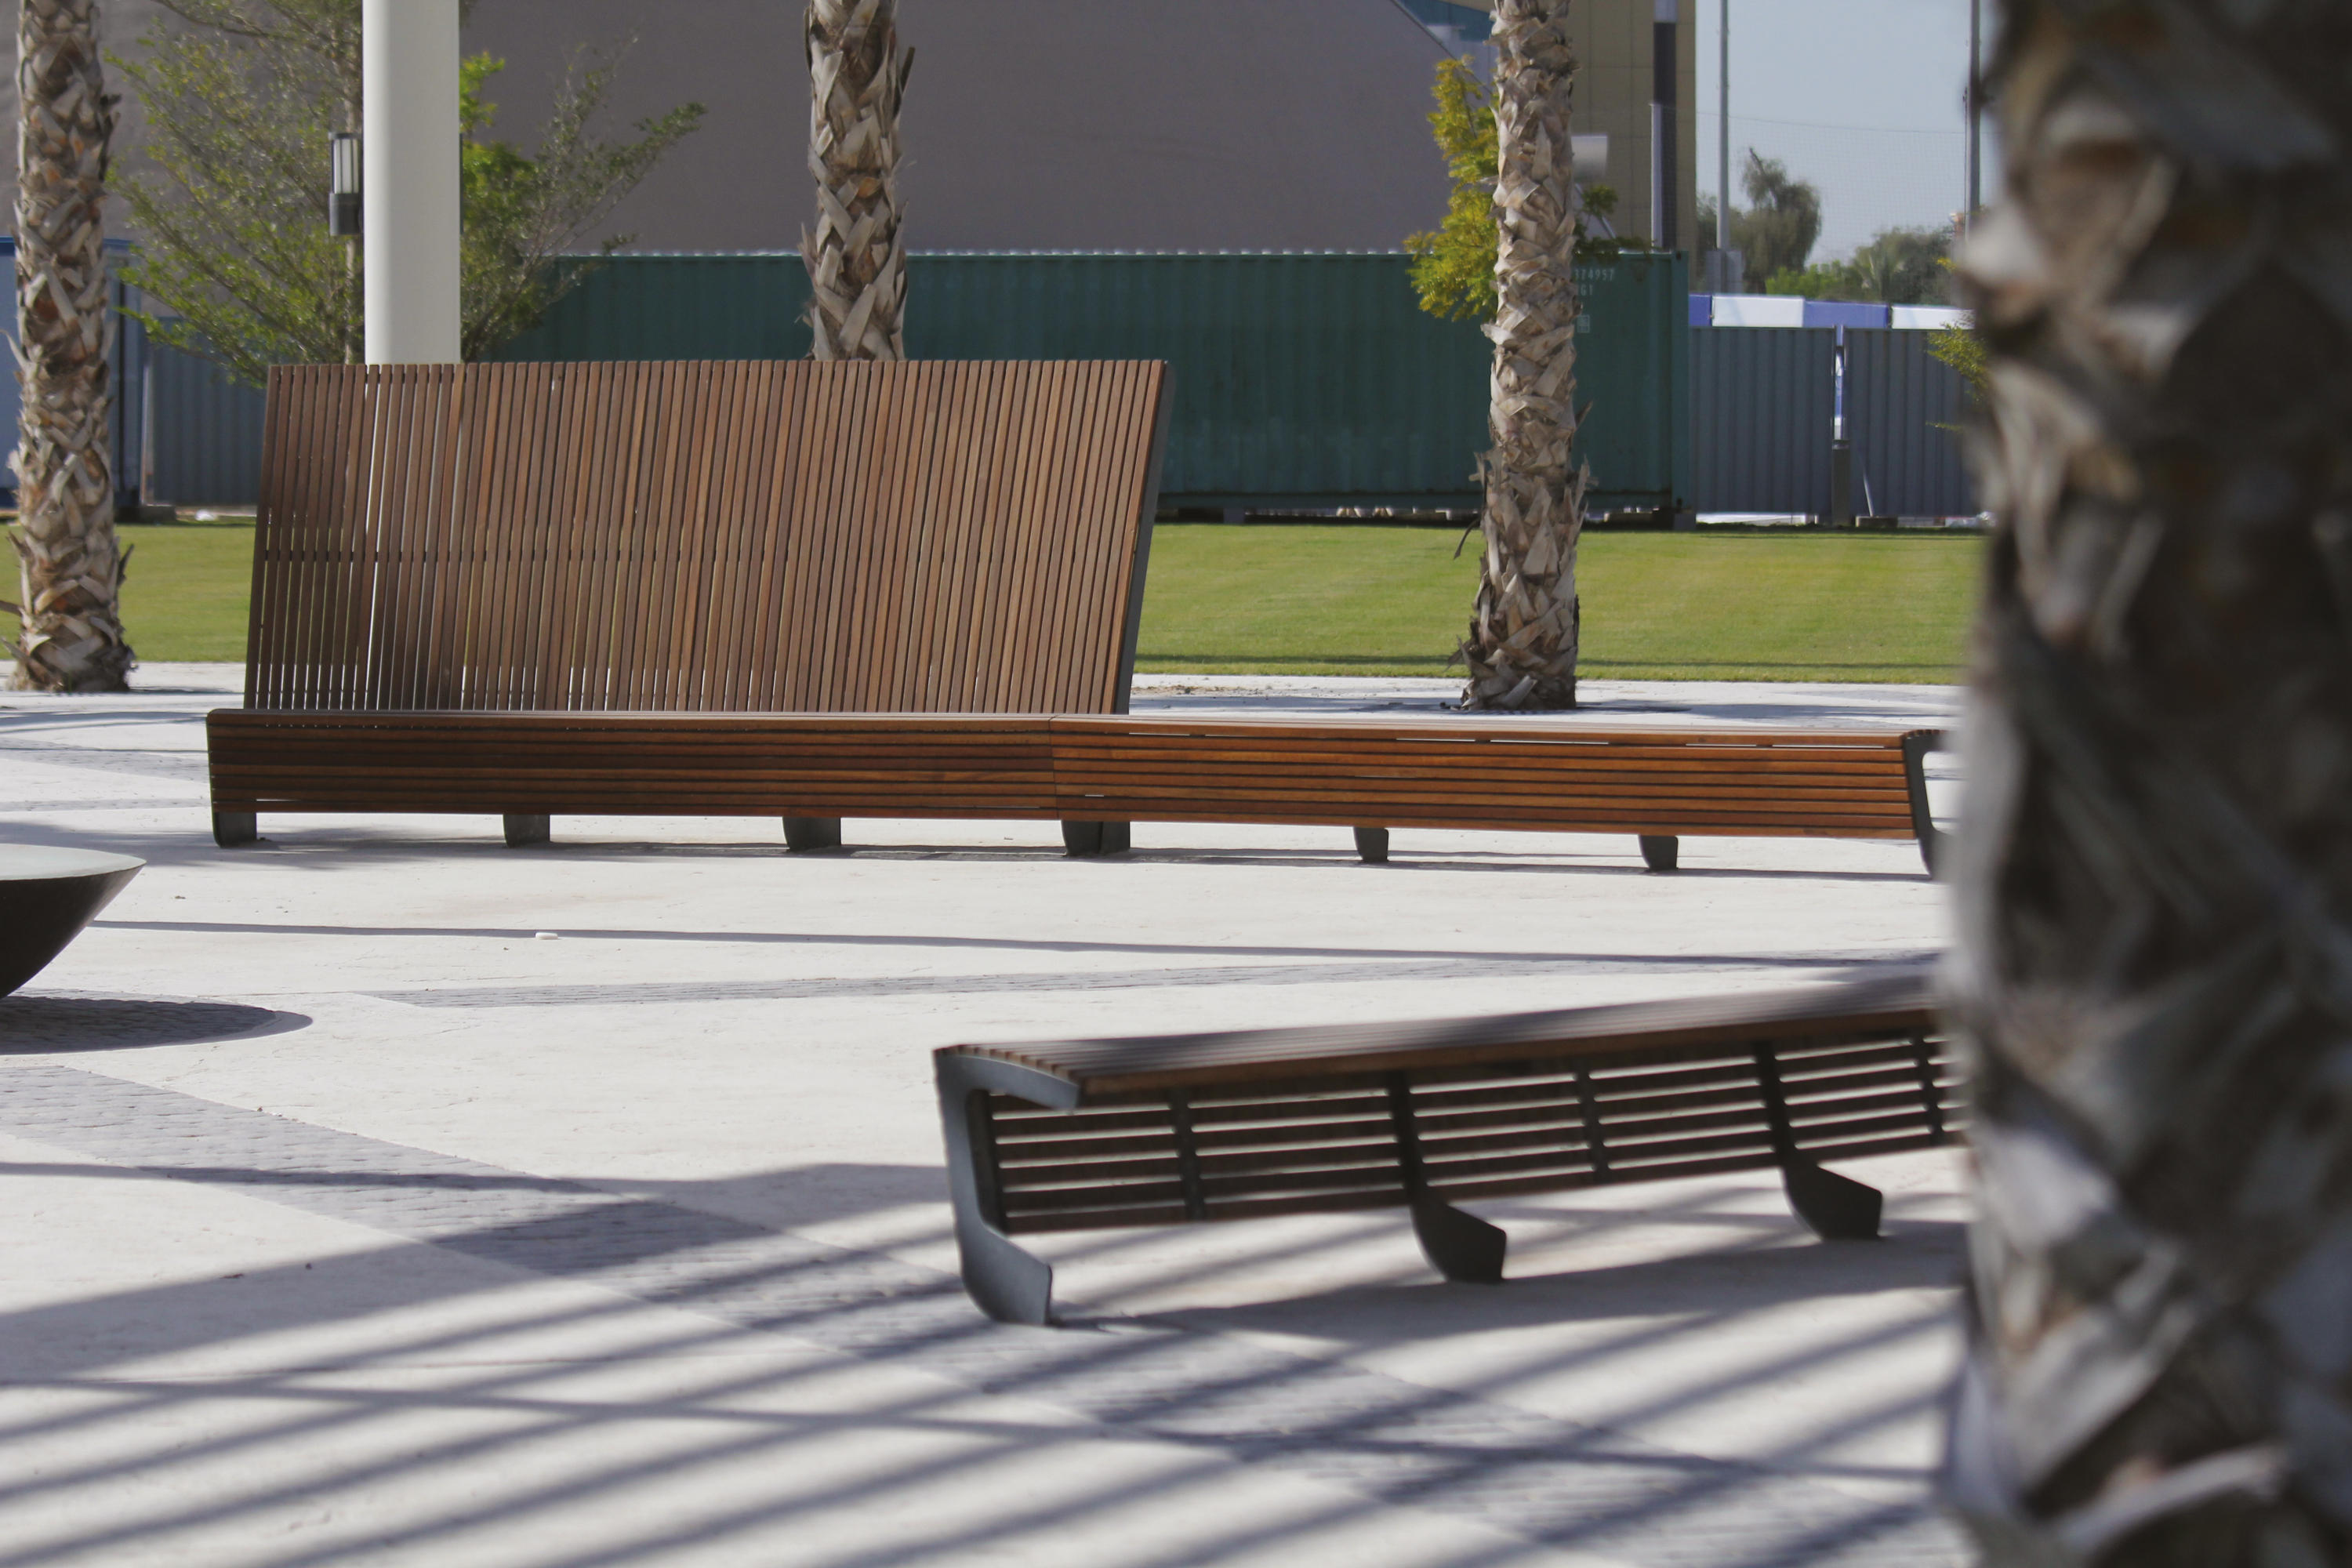 Landscape Curved Park Bench With High Backrest Benches